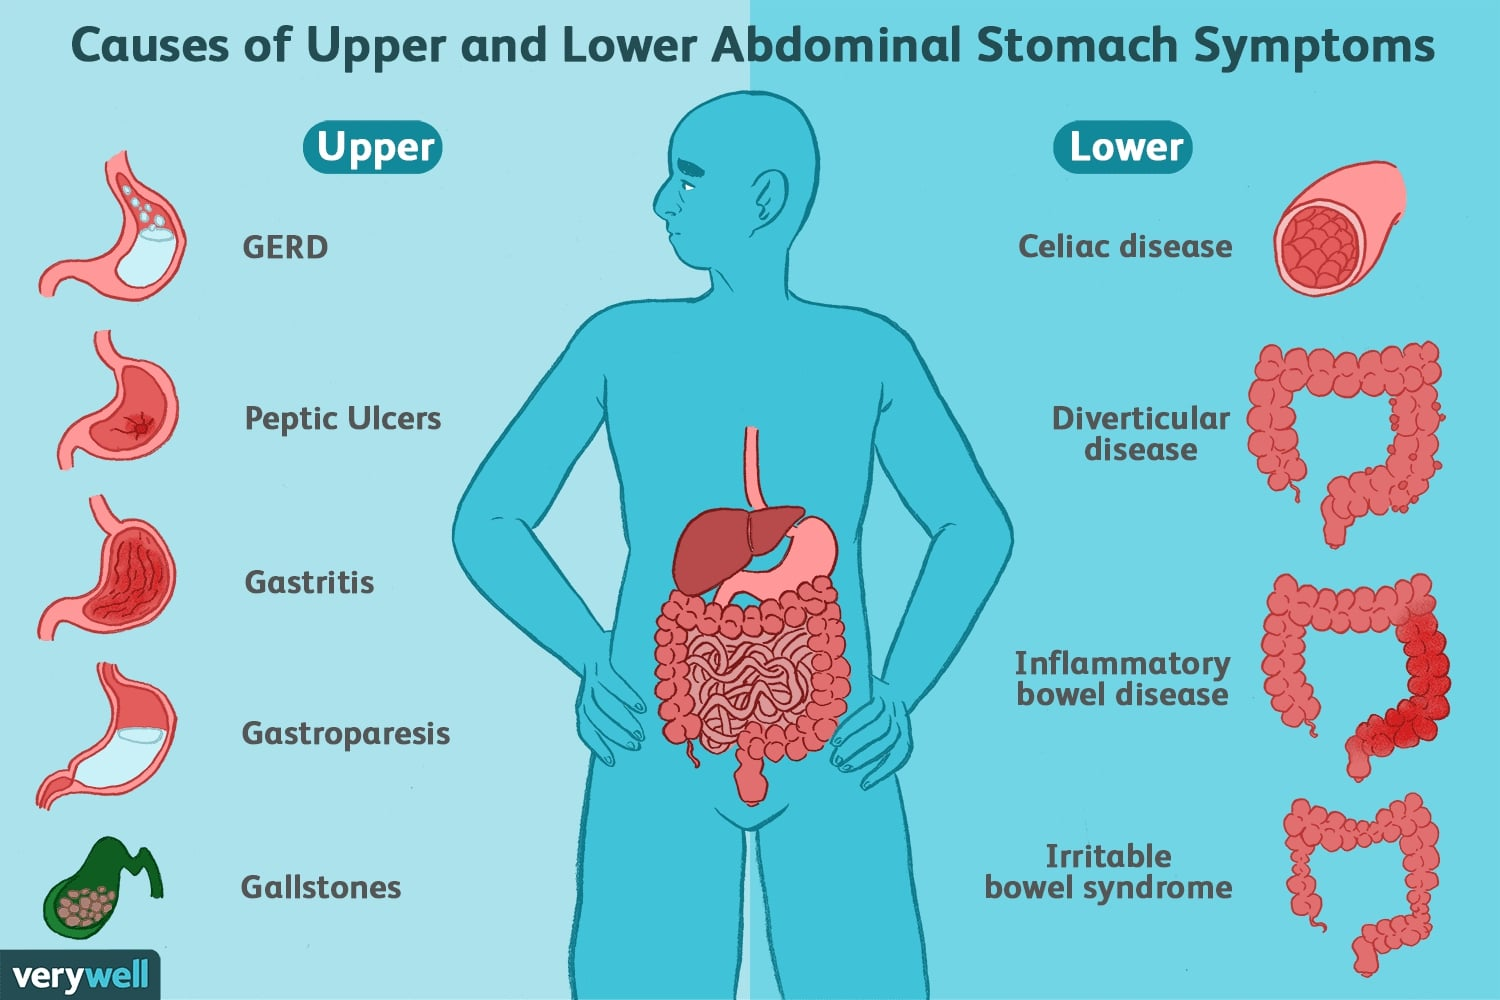 Chart of Causes of abdominal Stomach Symptoms